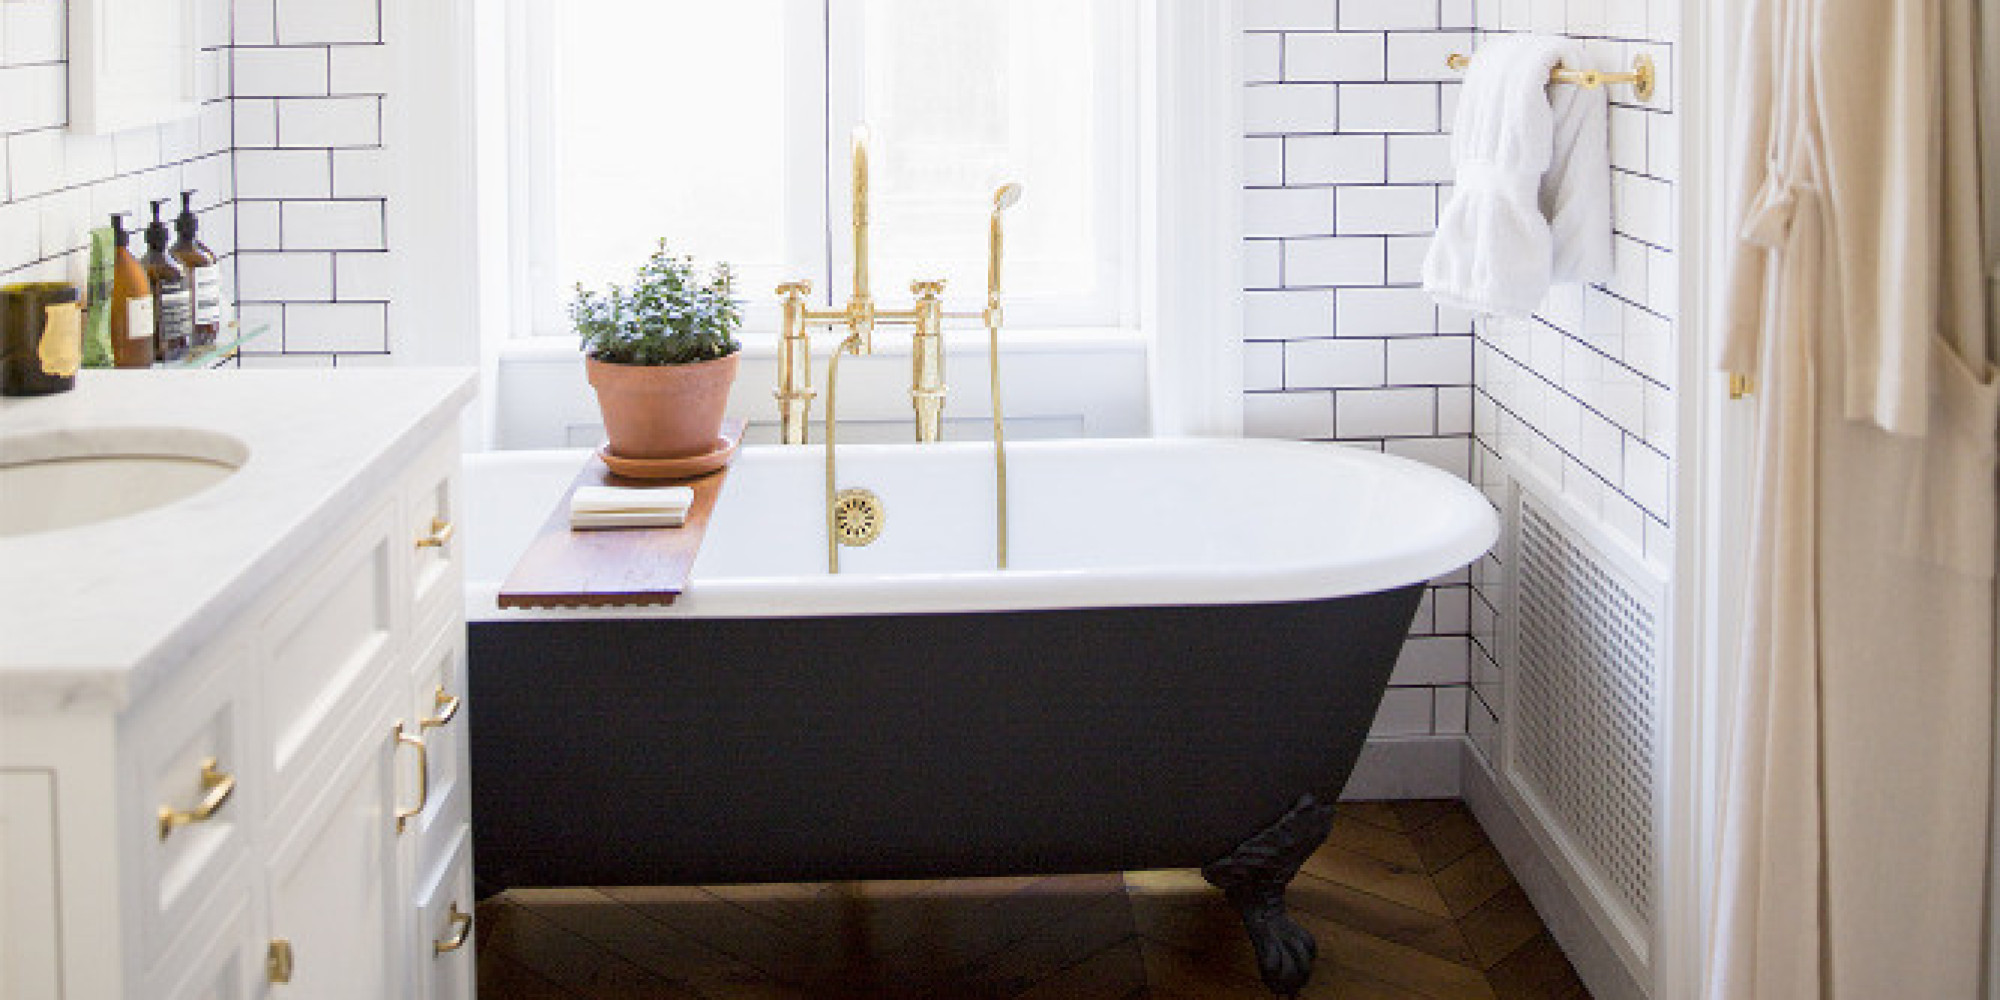 Bathroom Tiles Latest Trends the 6 biggest bathroom trends of 2015 are what we've been waiting